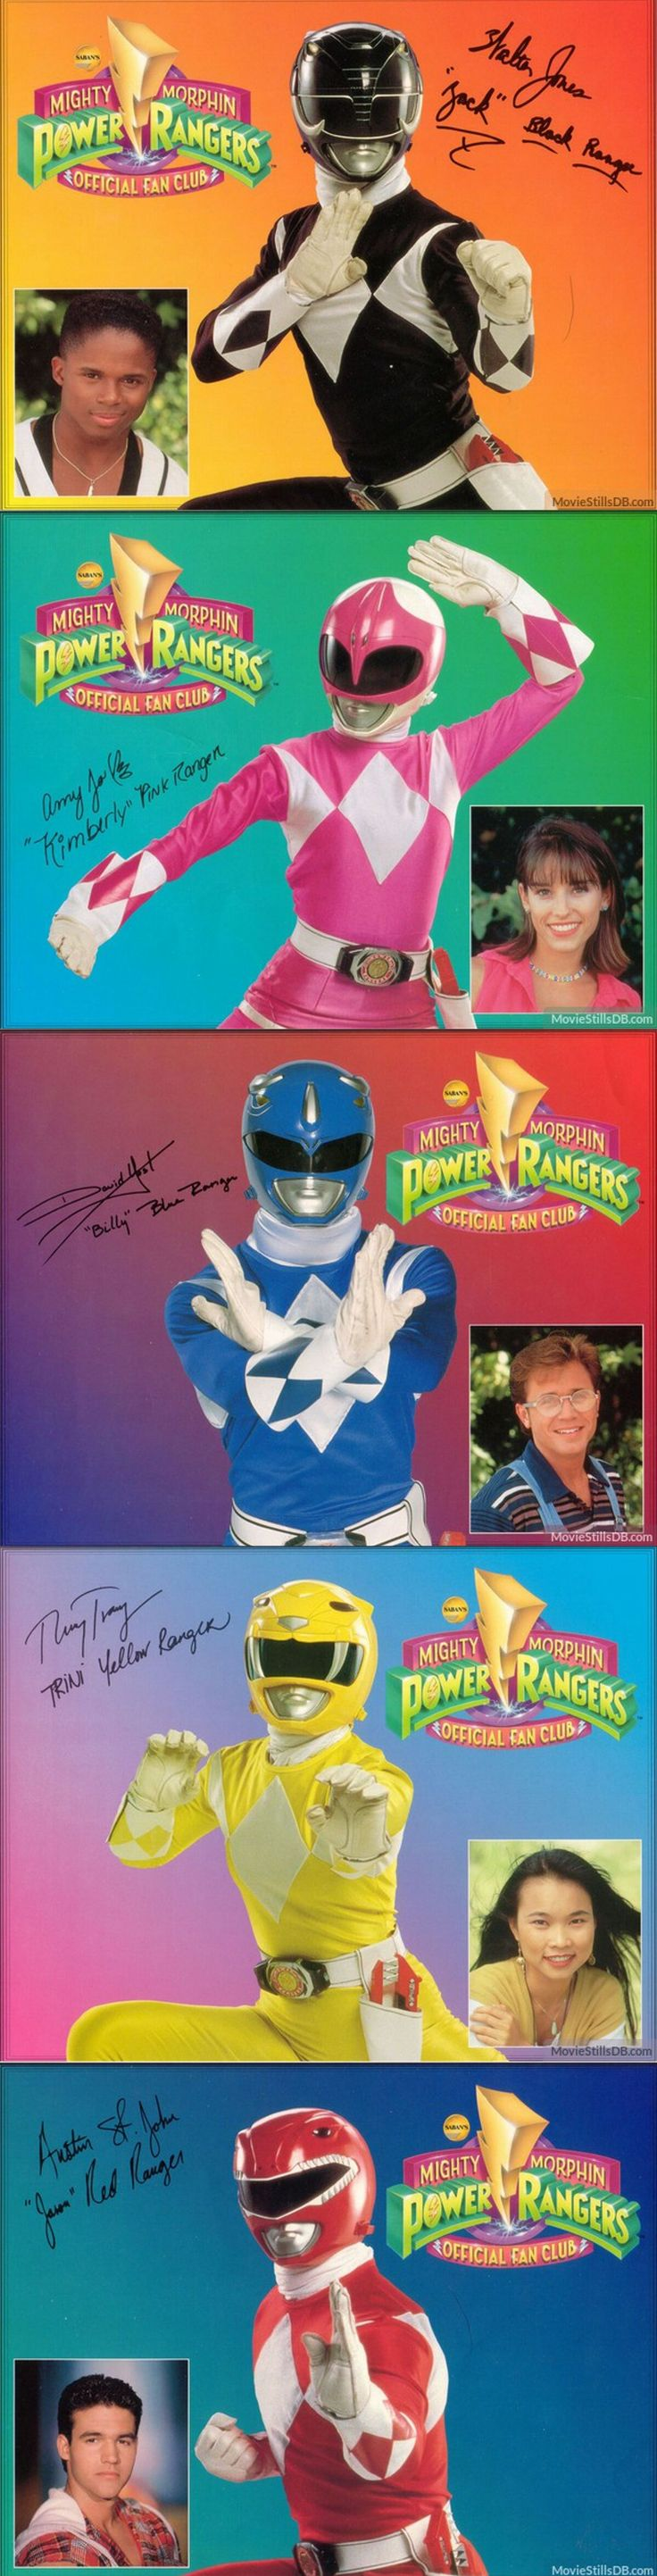 """Mighty Morphin Power Rangers"" ~ Black Ranger -- Zack Taylor (Walter Emanuel Jones), Pink Ranger -- Kimberly Hart (Amy Jo Johnson), Blue Ranger -- Billy Cranston (David Yost), Yellow Ranger -- Trini Kwan (Thuy Trang), and Red Ranger -- Jason Lee Scott (Austin St. John)"